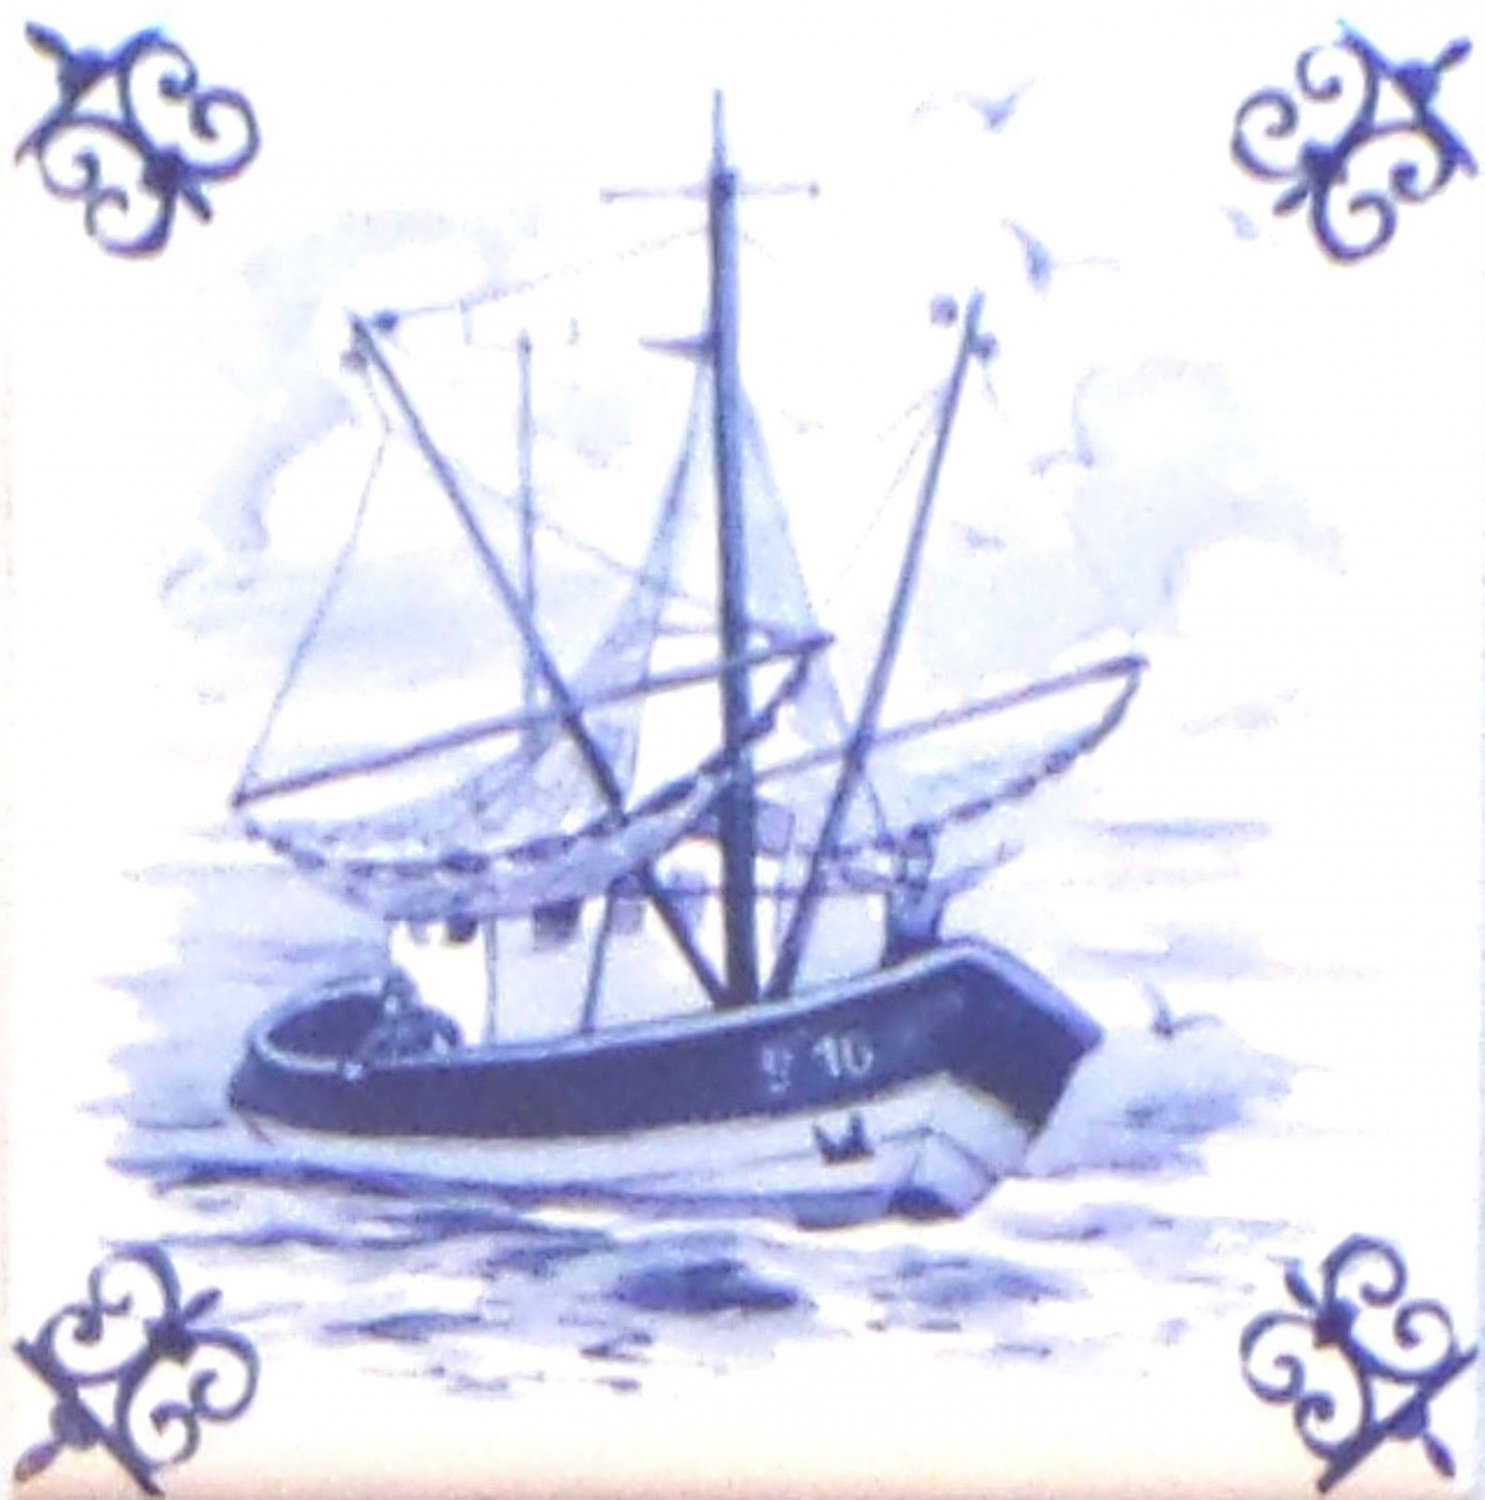 Blue Fishing Boat Ox Tail Ceramic Tile Accent Kiln Fired Back Splash Delft 4.25""